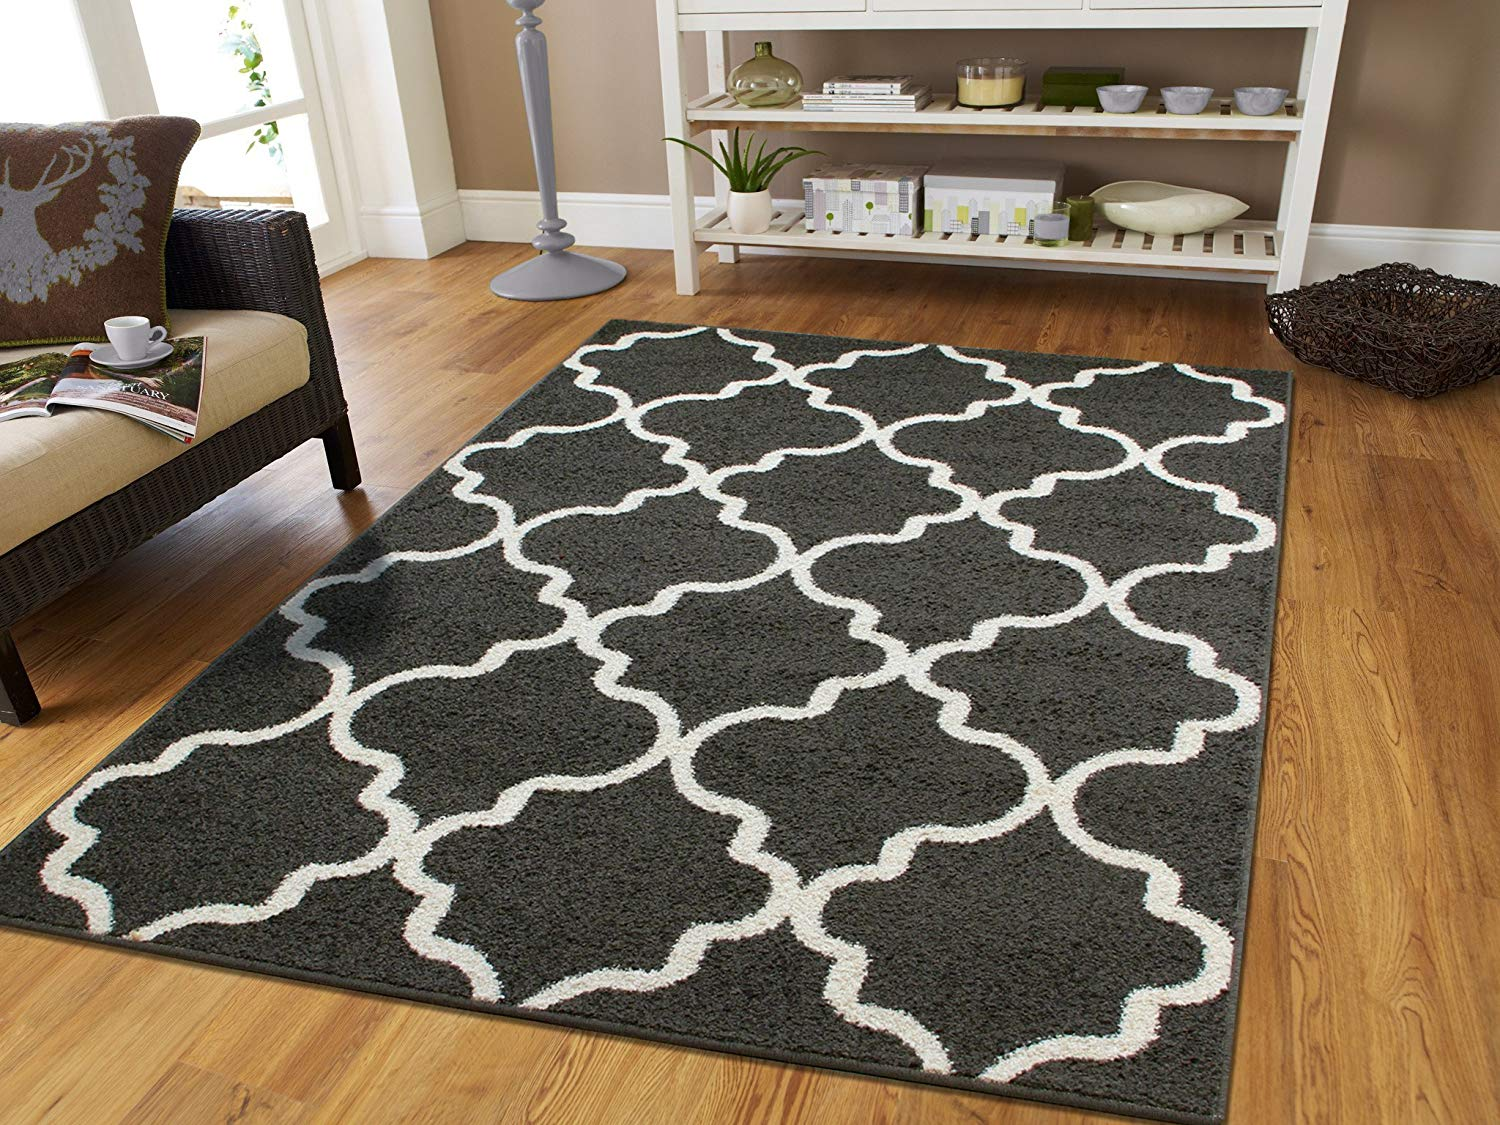 floor rugs amazon.com: large 8x11 morrocan trellis area rug gray contemporary rugs  8x10 for AZZYQSK